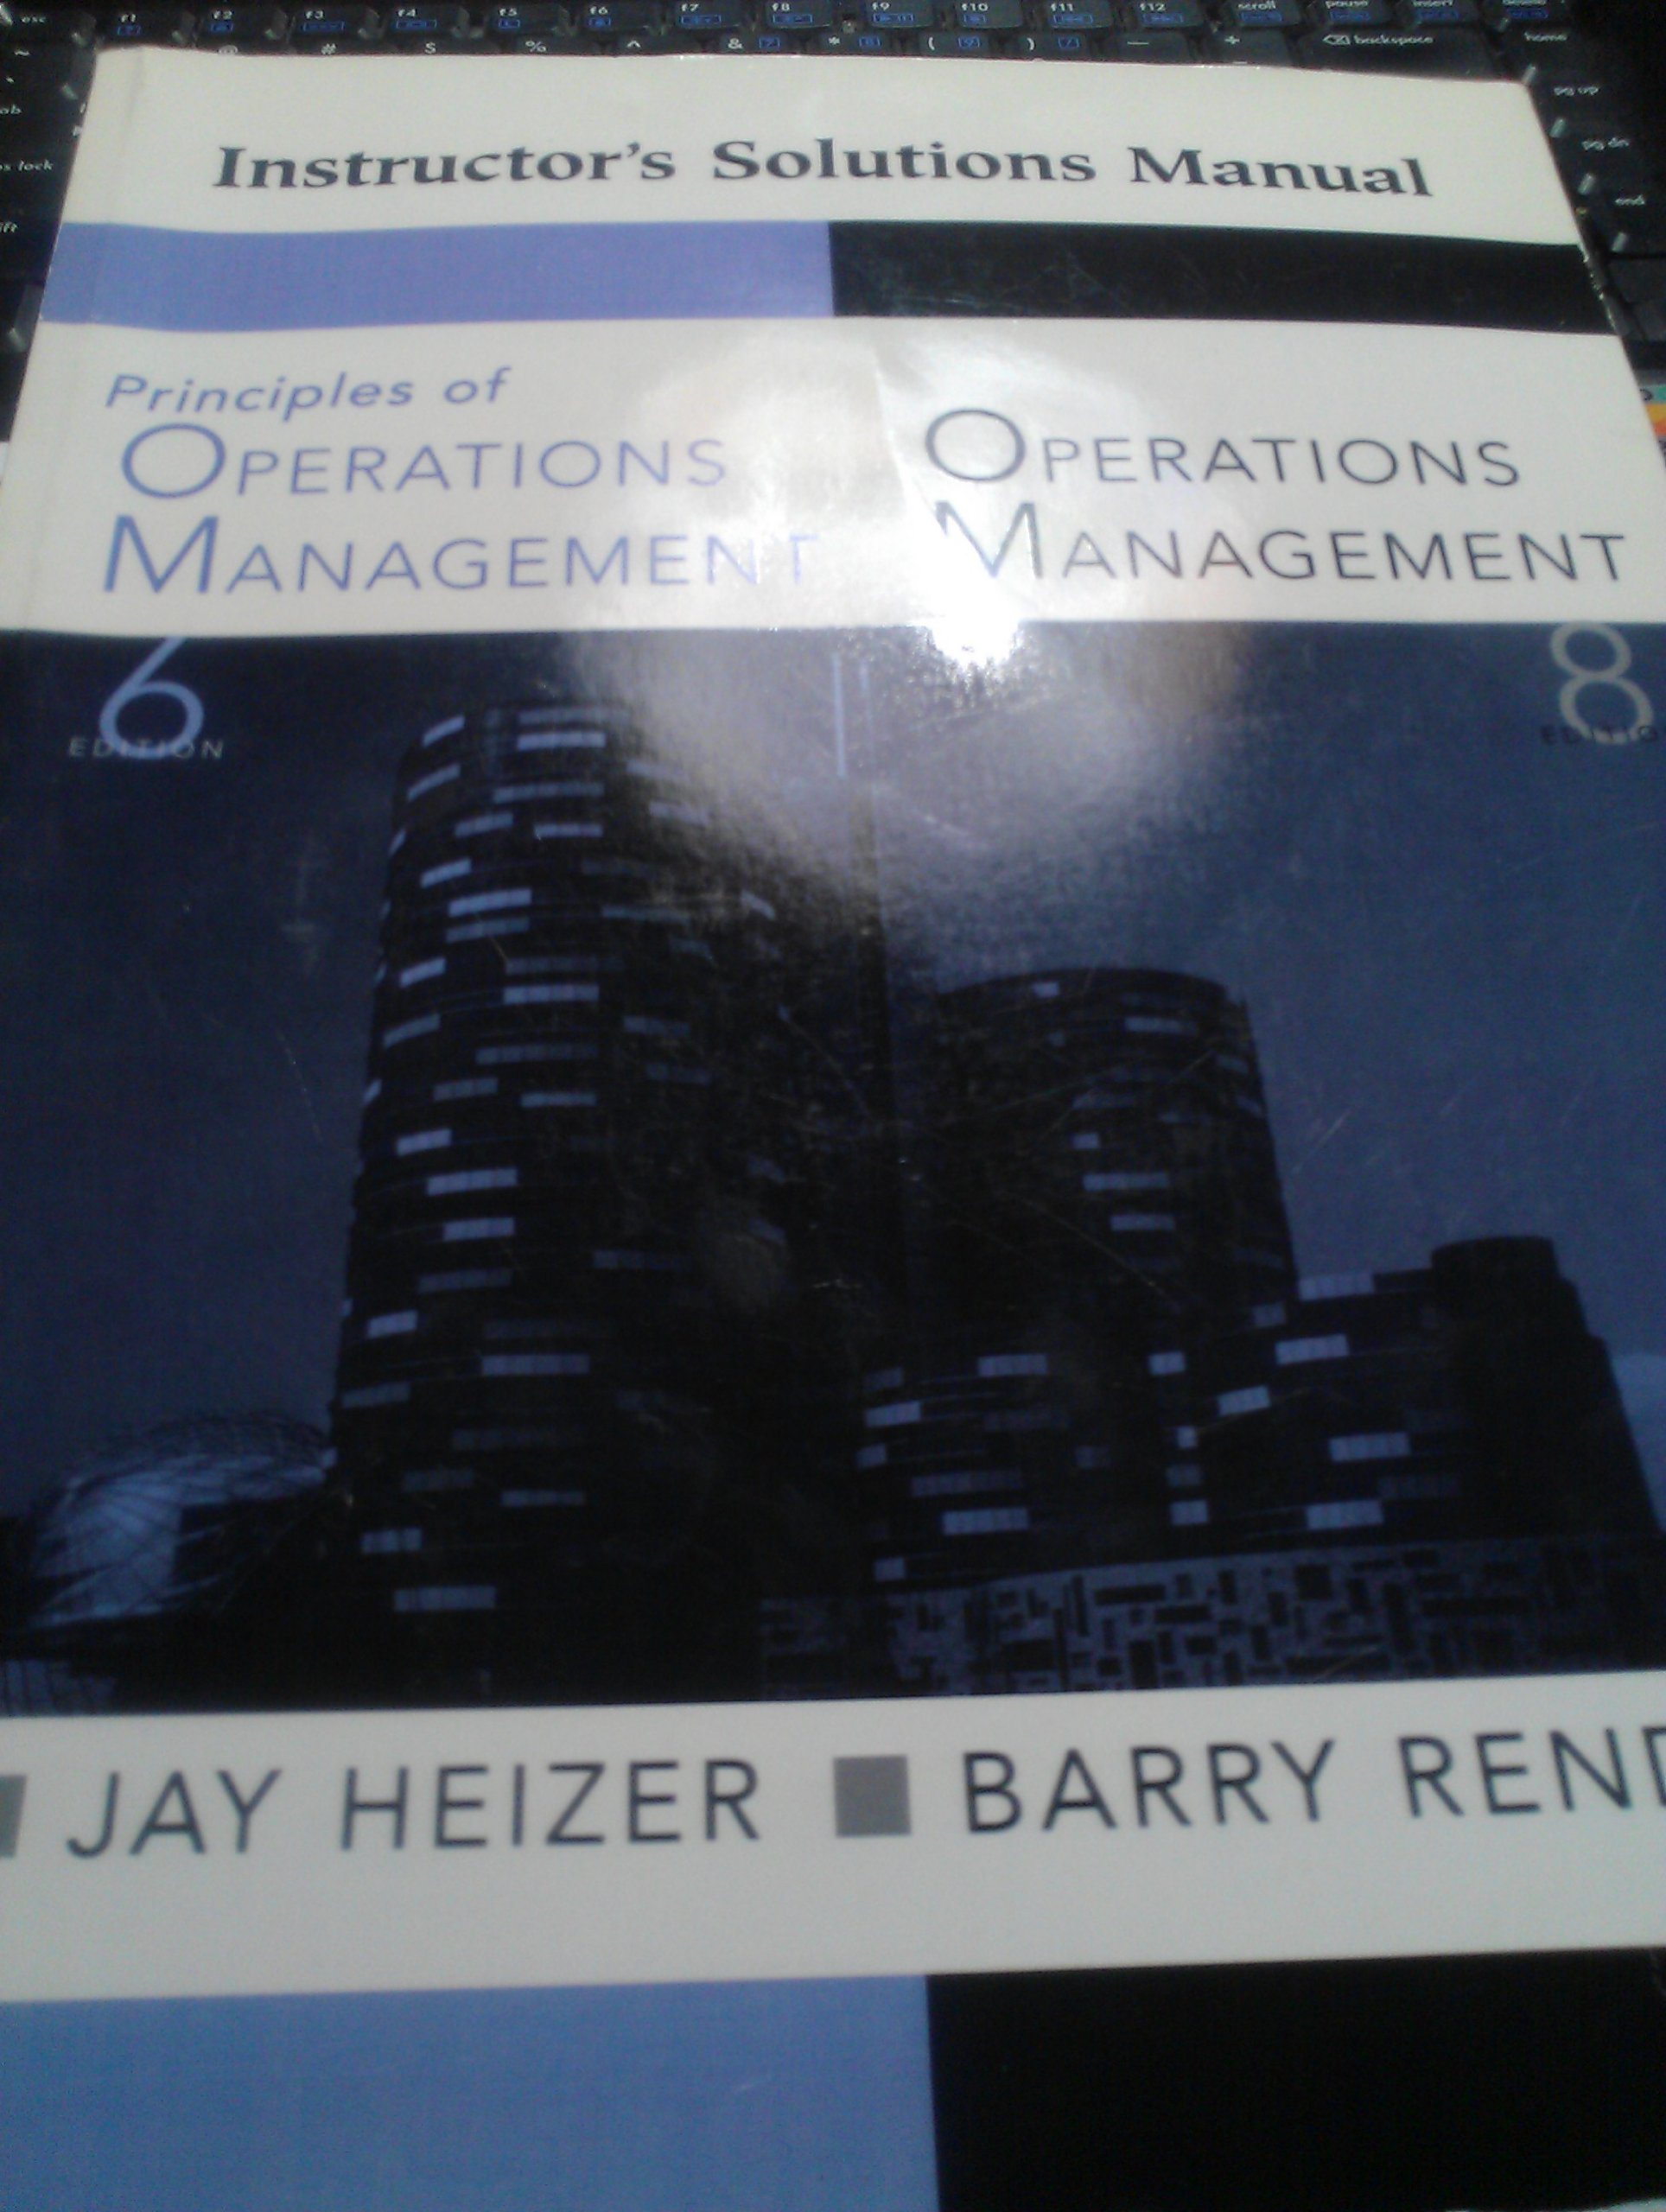 Instructor's Solutions Manual Principles of Operations Management Ed.6, operations  Management Ed.8: barry render jay heizer: 9780131858961: Amazon.com: ...